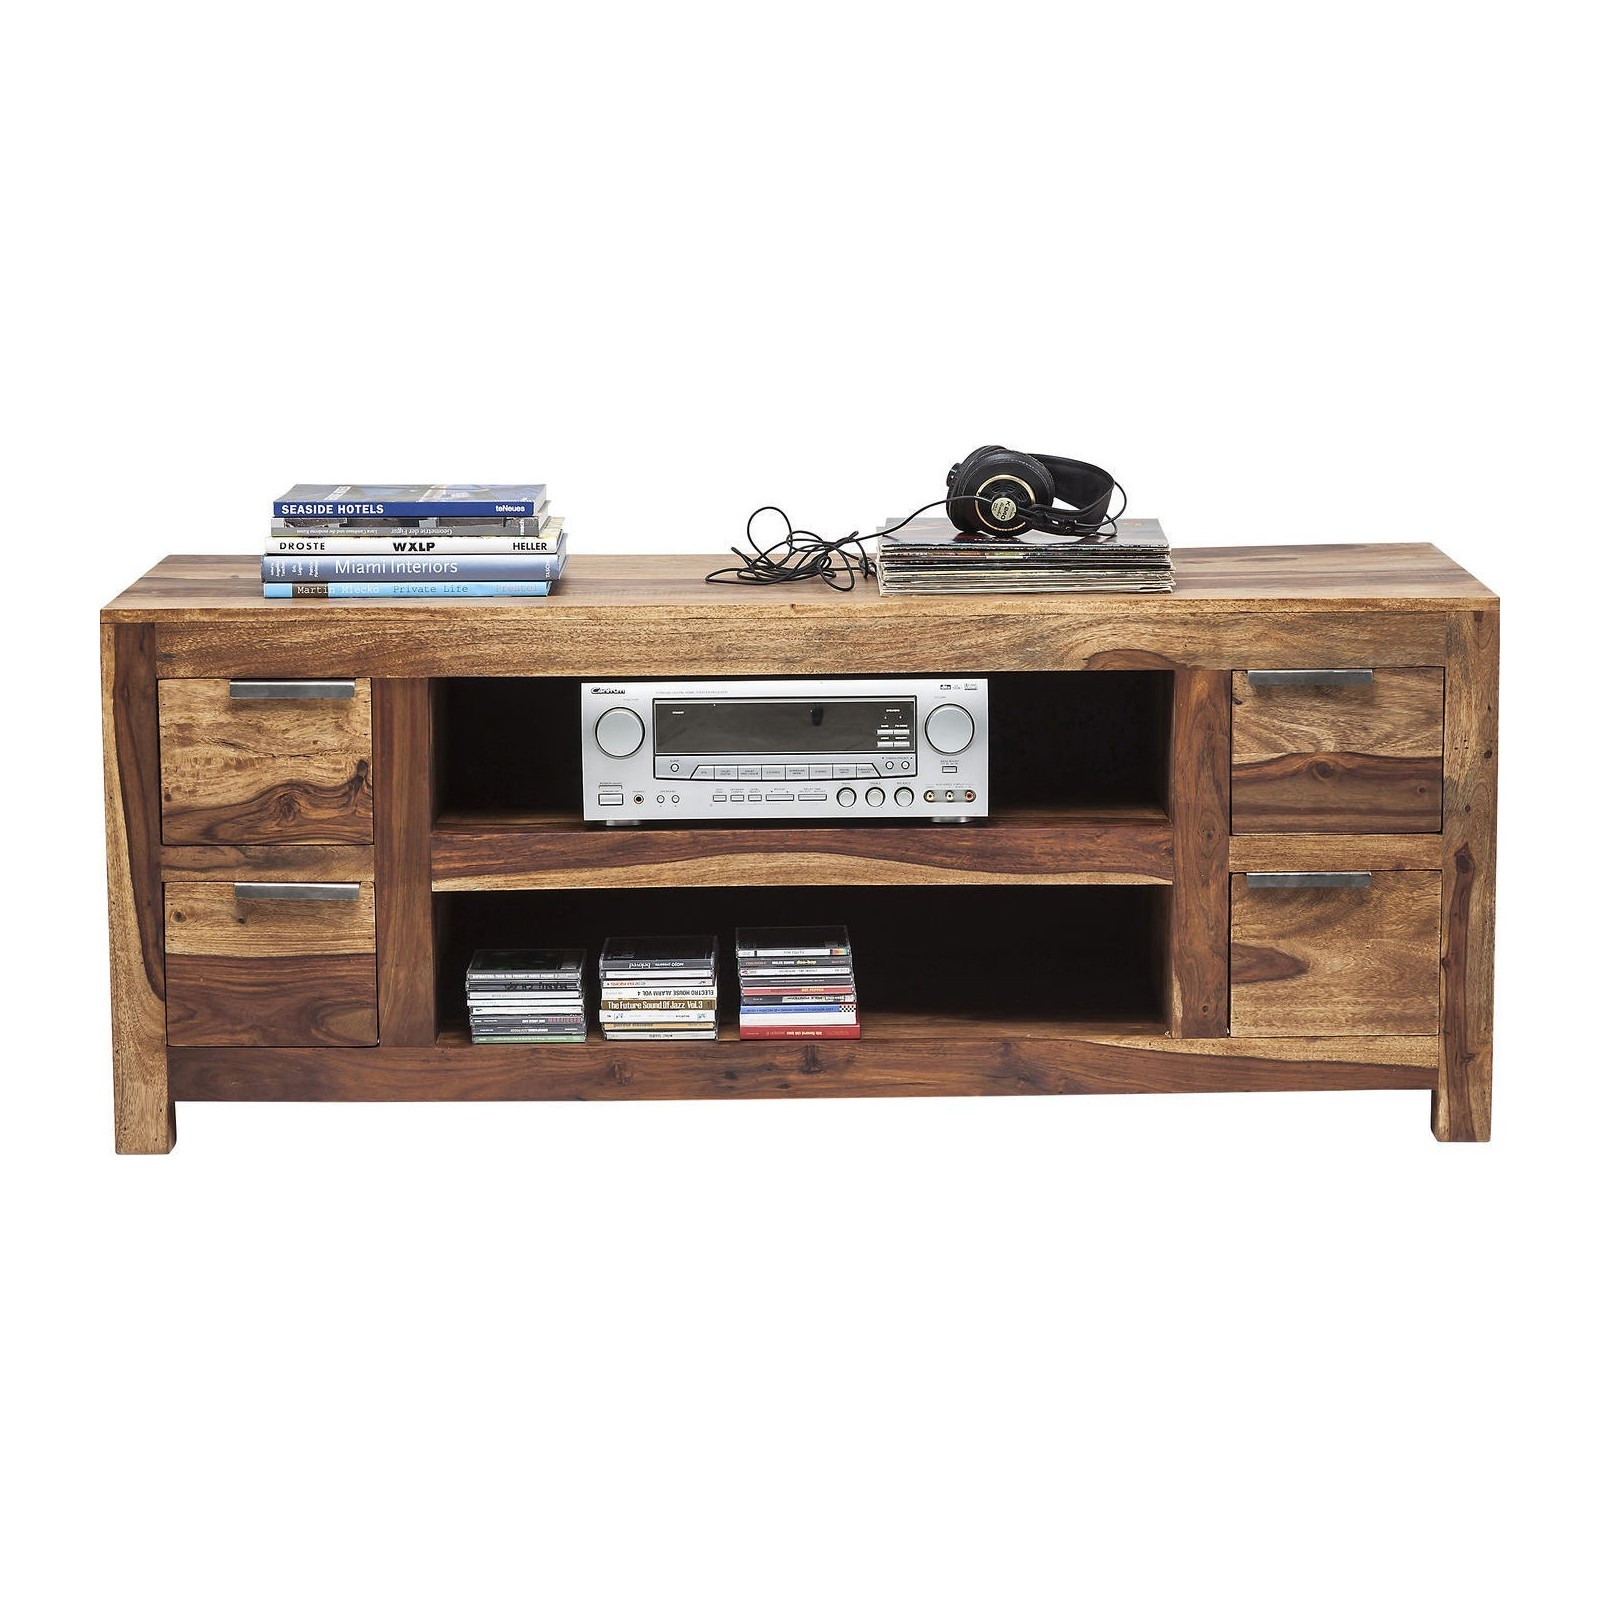 Meuble Tv Traditionnel En Bois Authentico Kare Design # Table Televiseur En Bois